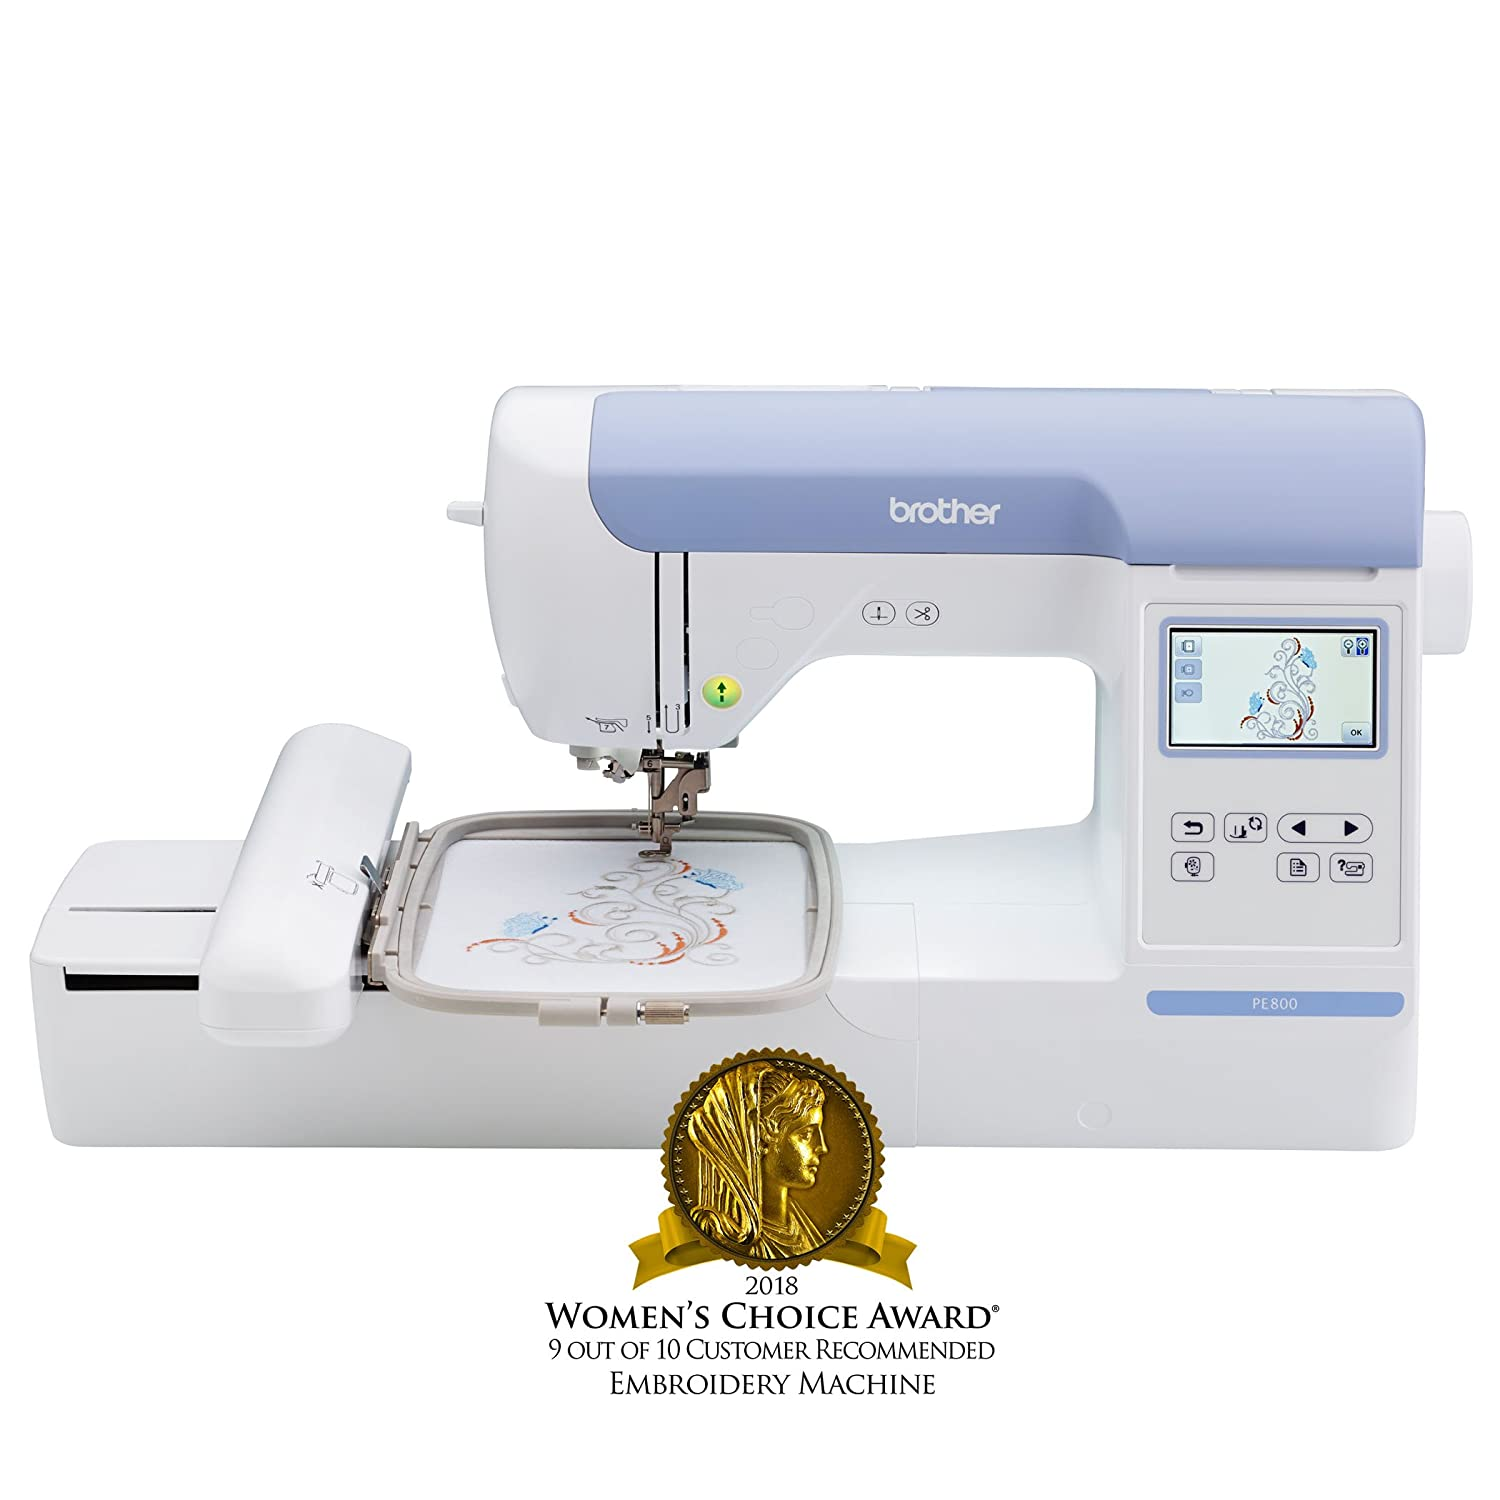 Best Embroidery Machine Reviews: A Must for Women in the Household 2